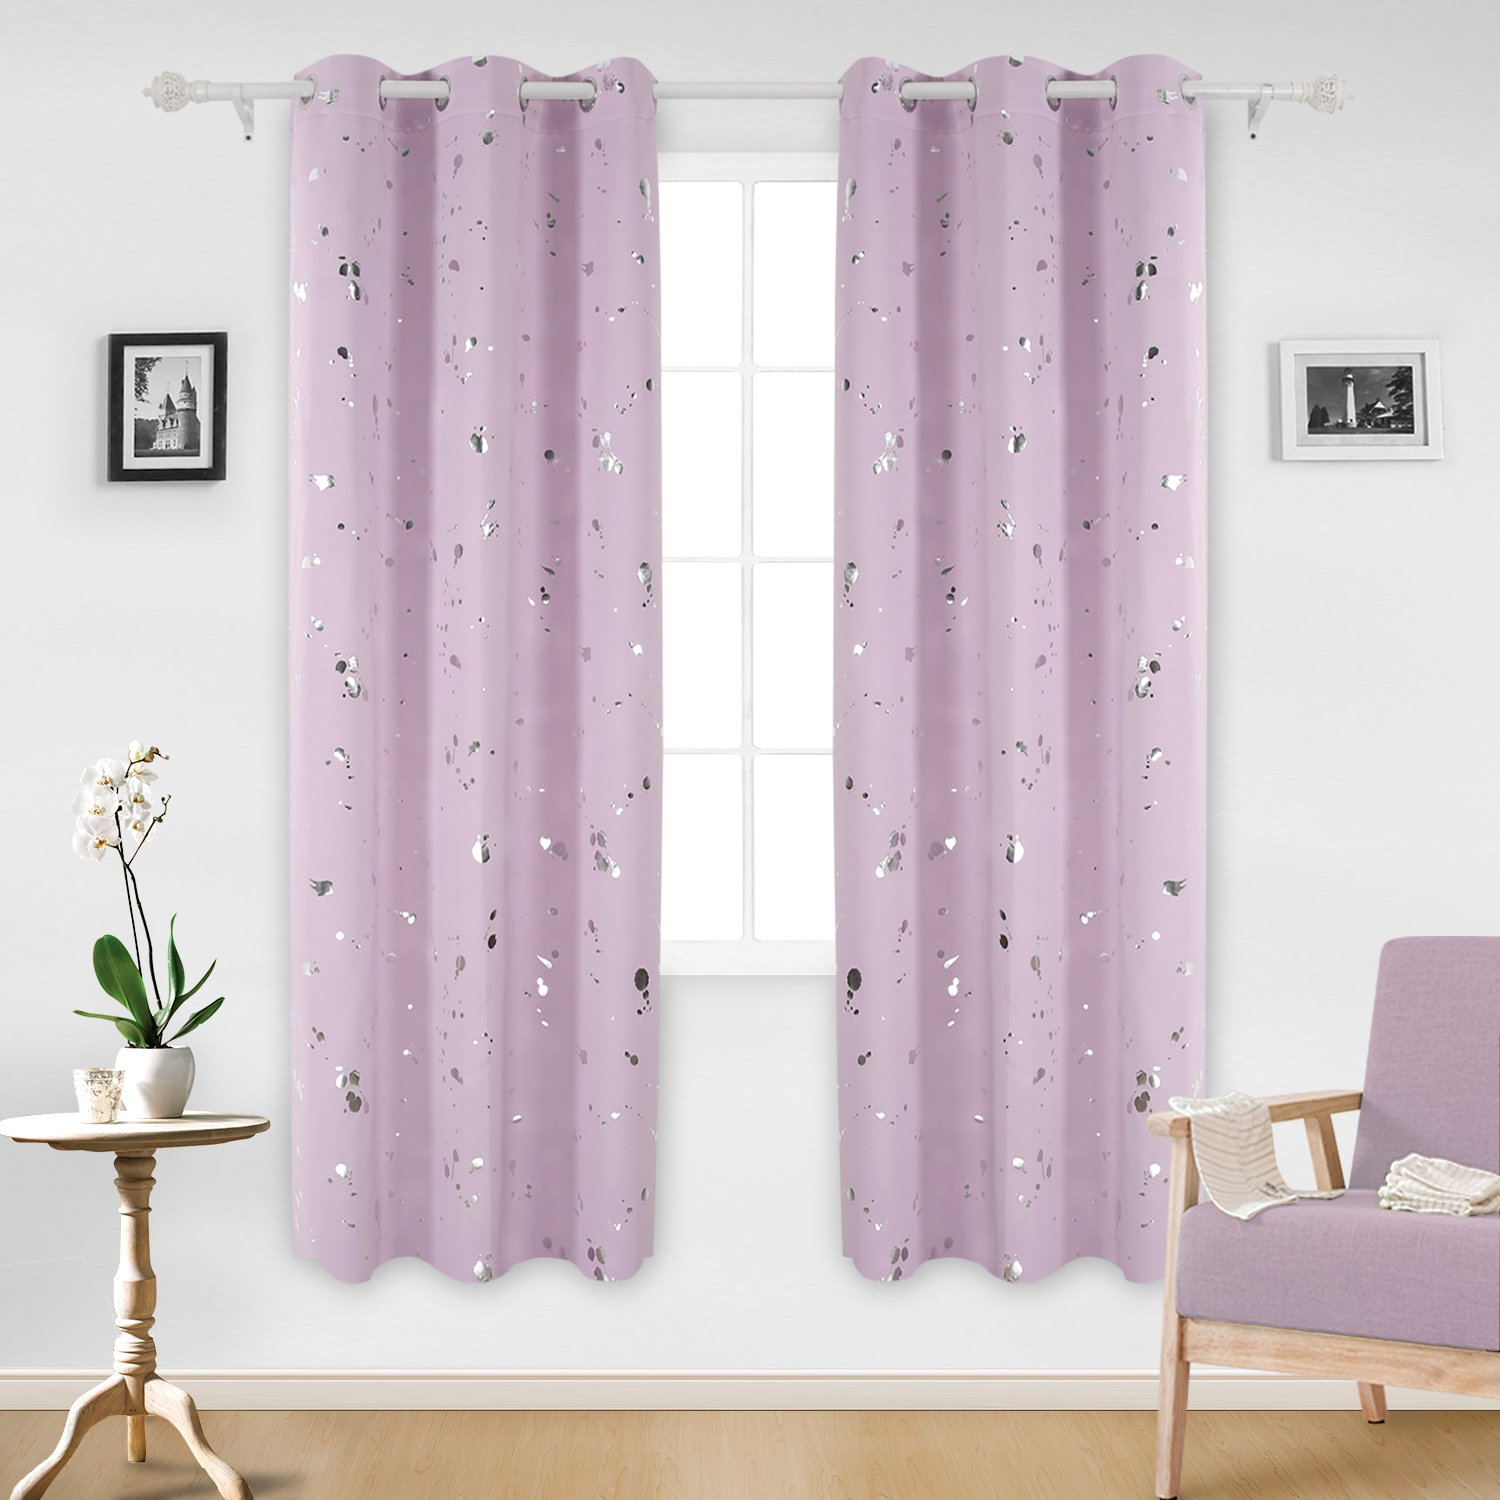 Deconovo Silver Dots Printed Blackout Grommet Curtains Pink Lavender Blackout Window Curtains for Girls Room